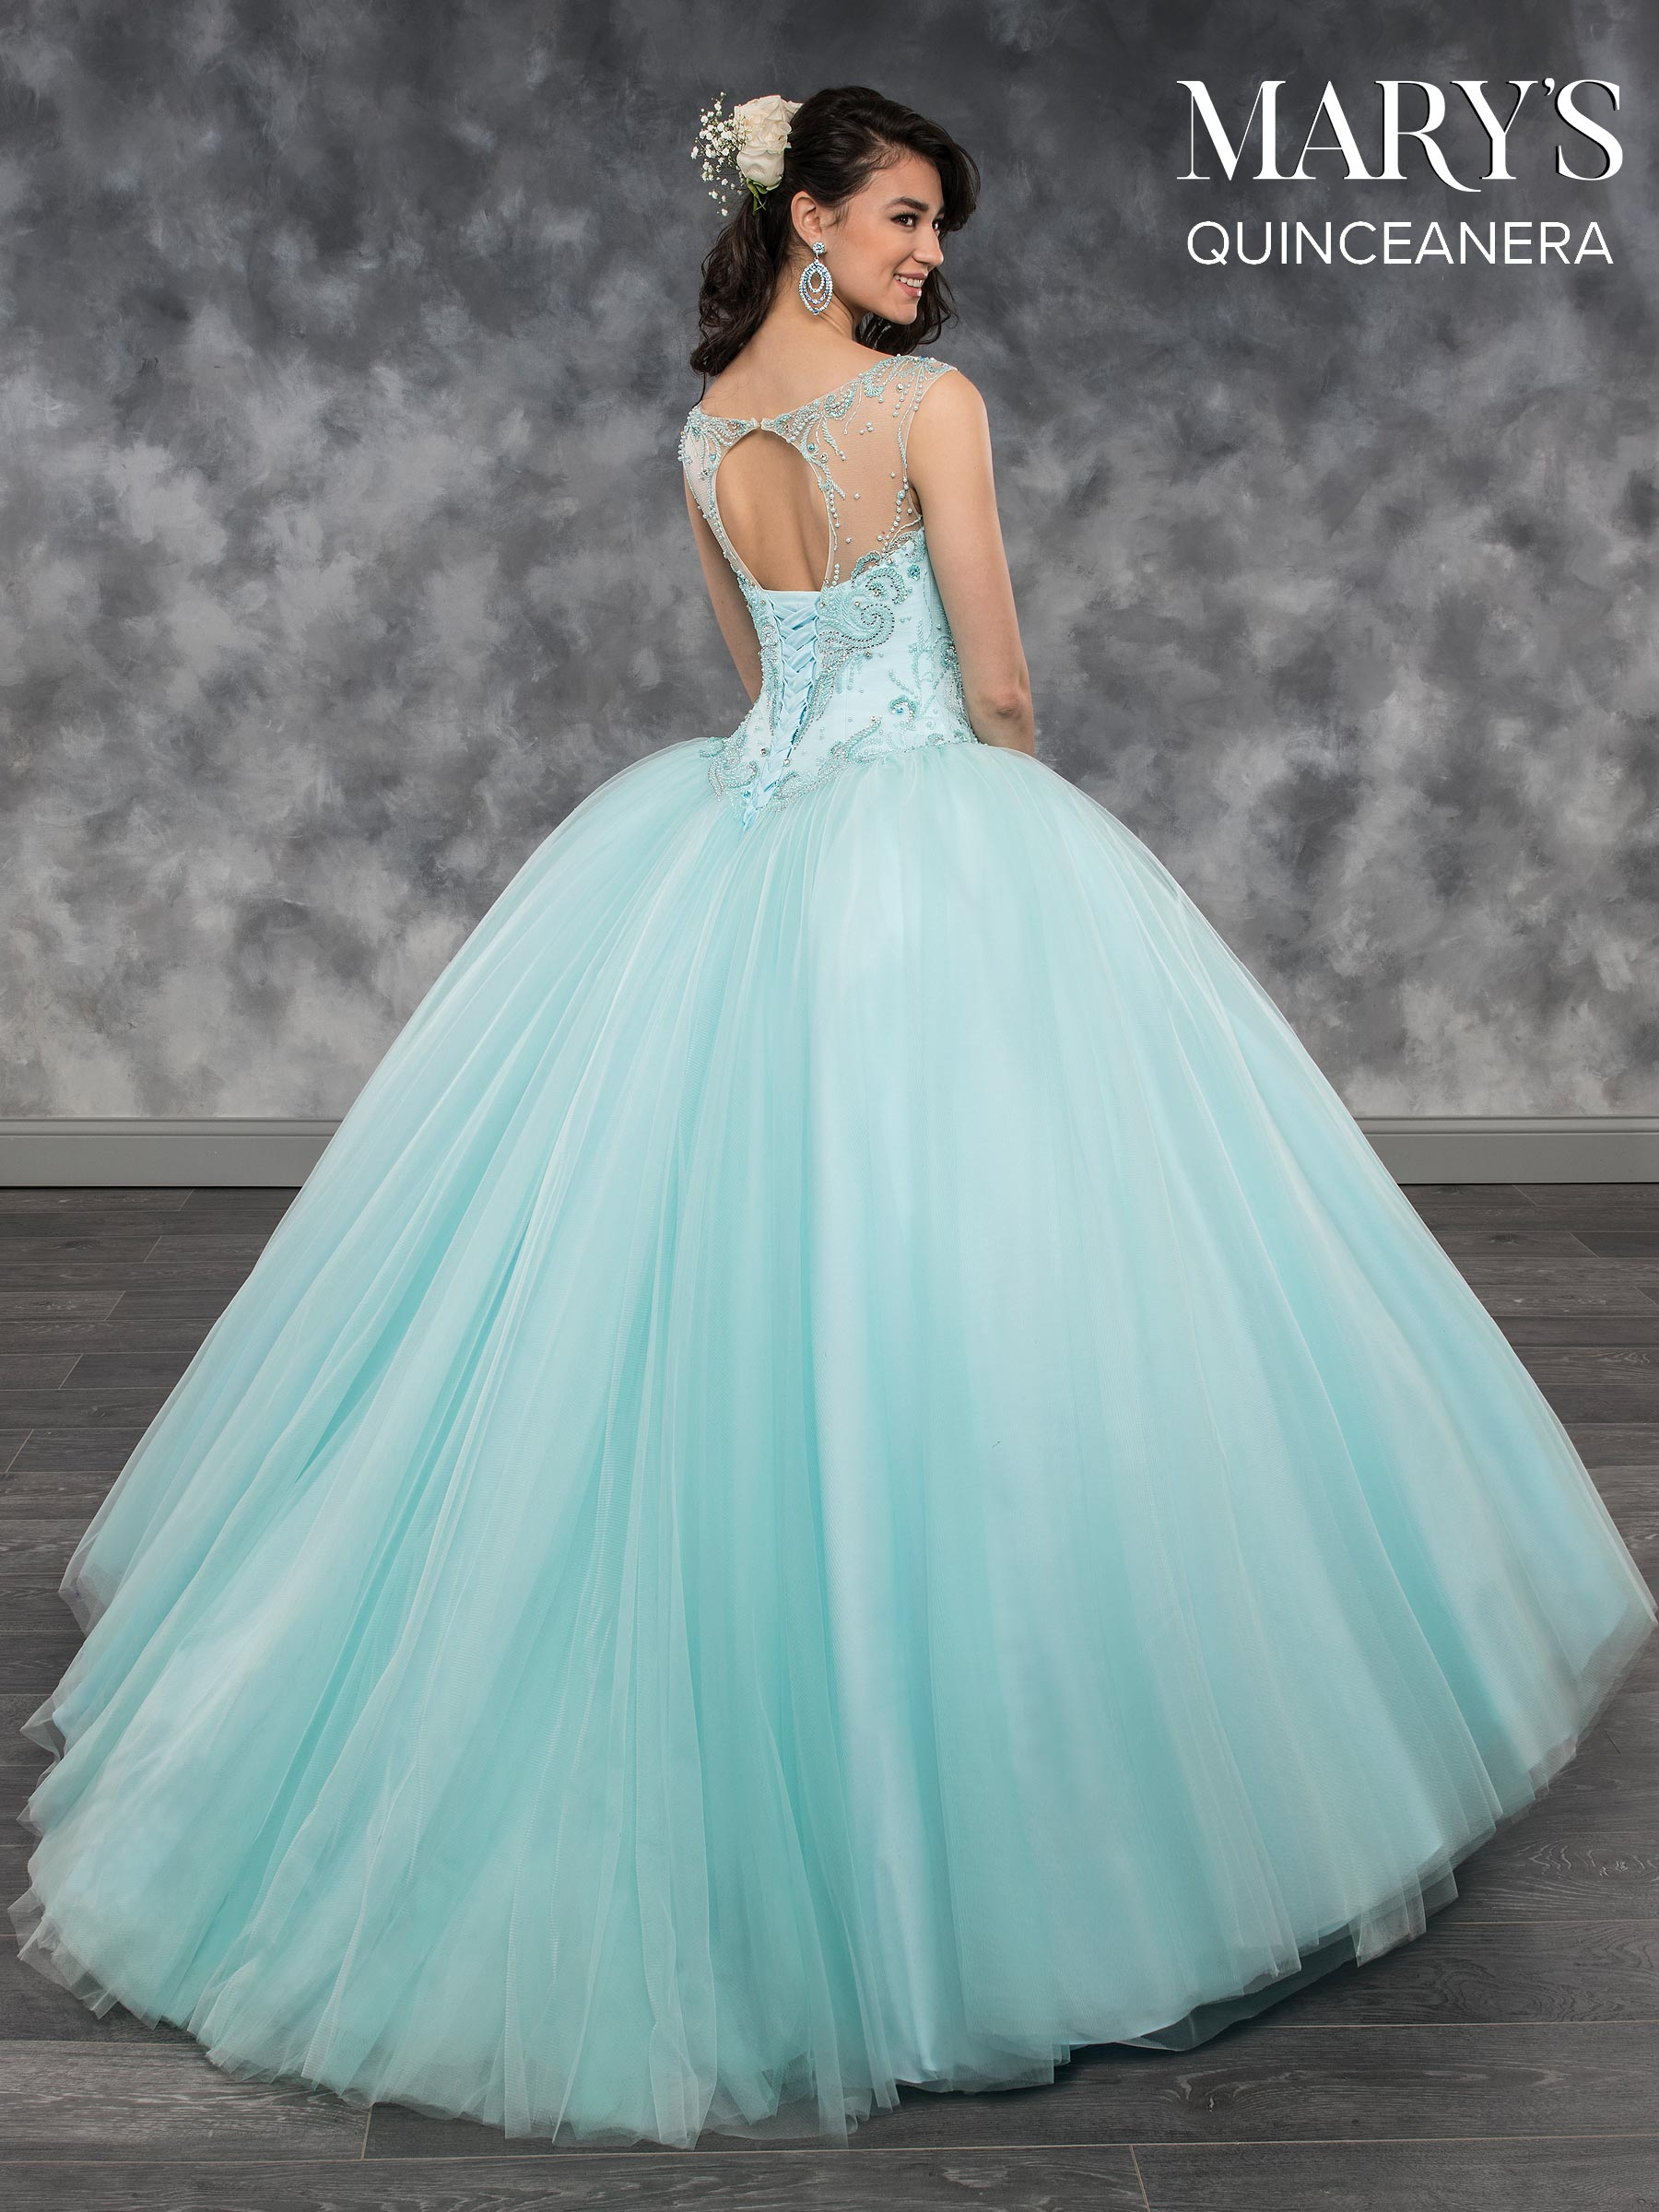 Marys Quinceanera Dresses | Mary's Quinceanera | Style - MQ2033